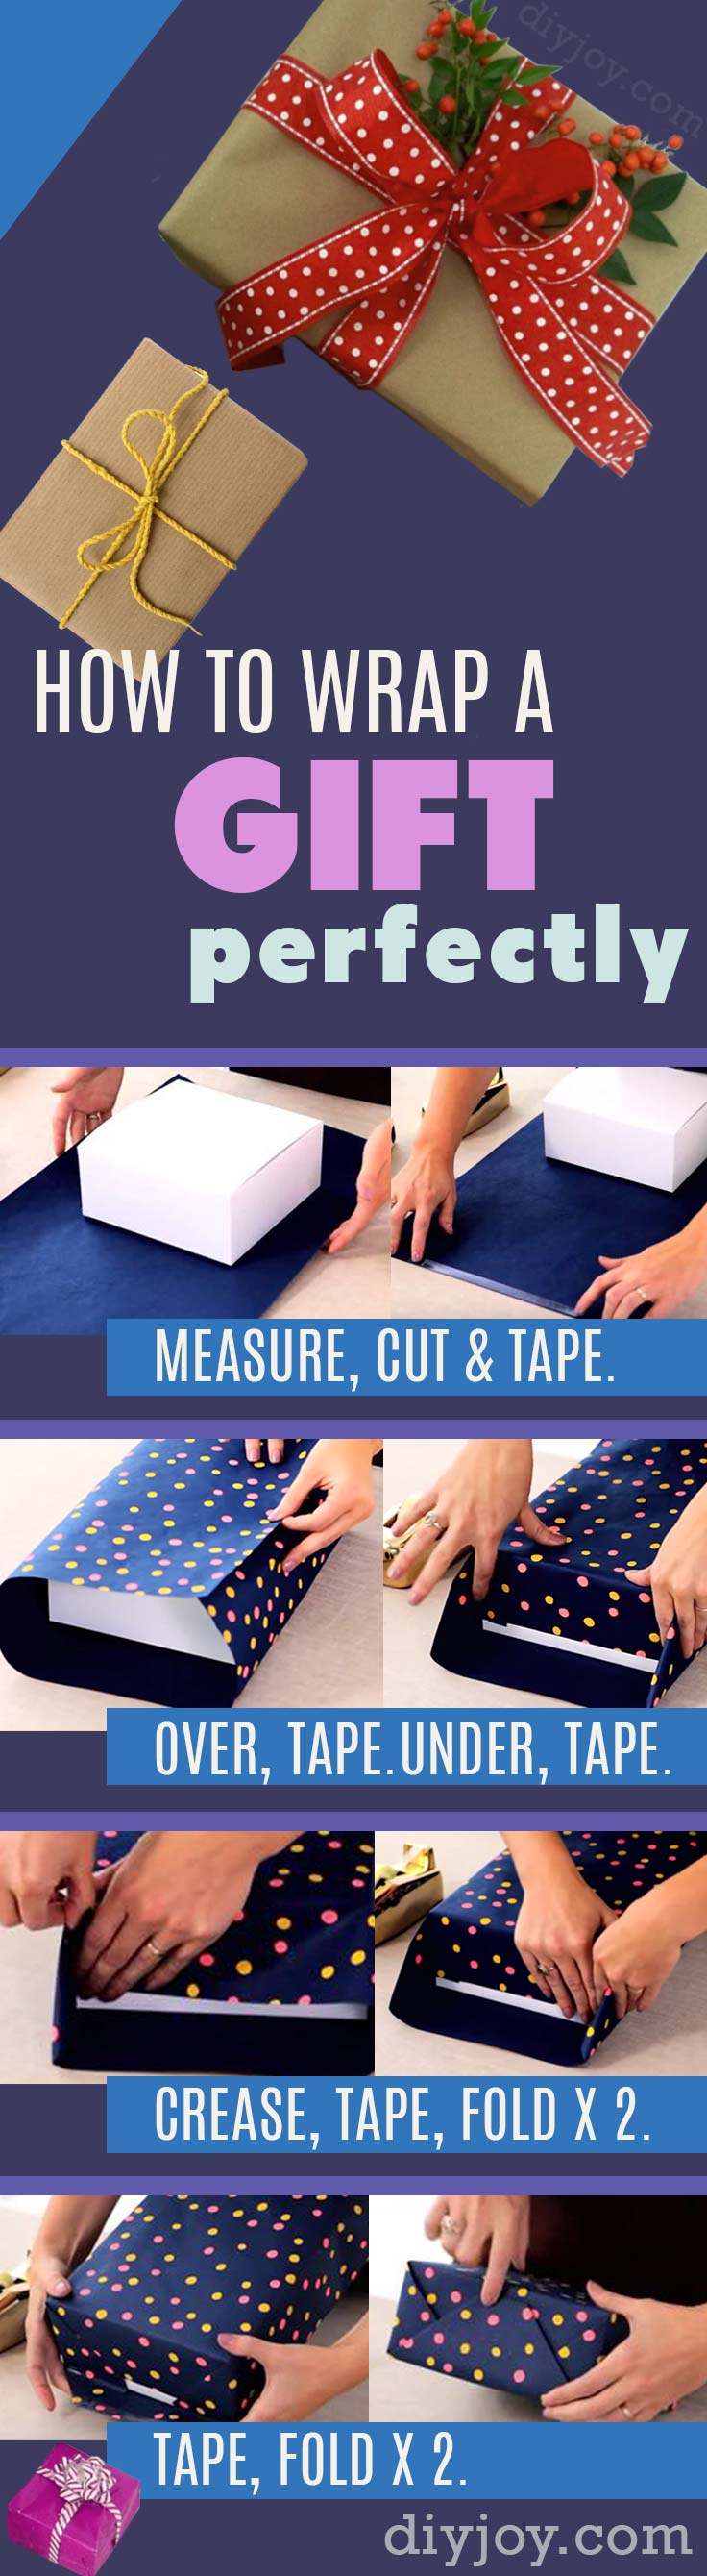 52 insanely clever gift wrapping ideas youll love how to wrap a gift diy gift wrap tutorial step by step instructions for solutioingenieria Image collections